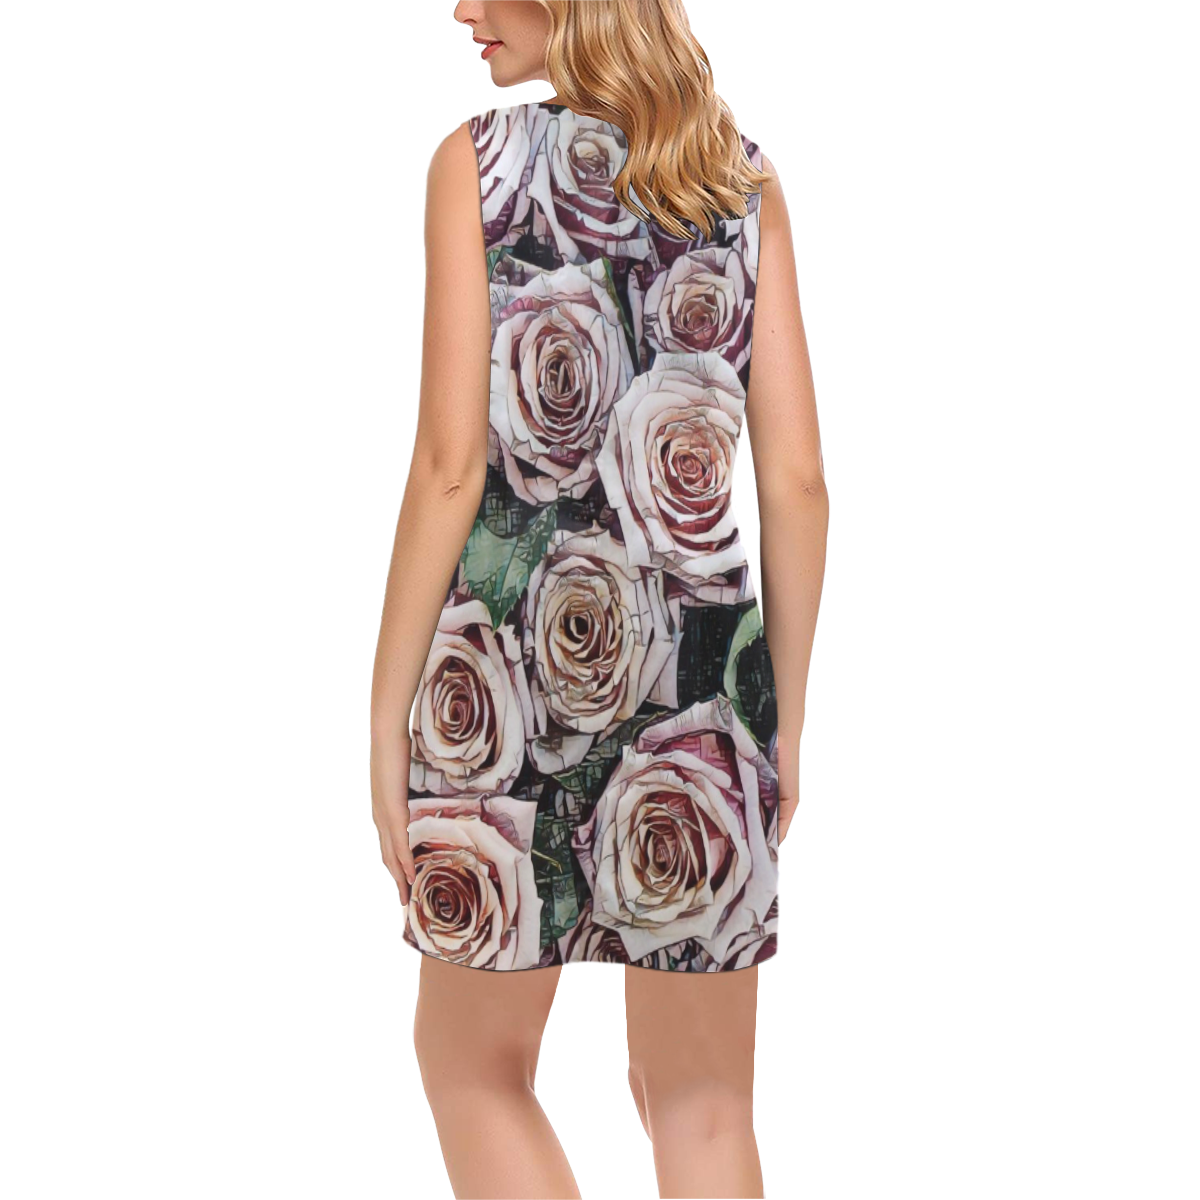 Impression Floral 9196 by JamColors Phoebe Sleeveless V-Neck Dress (Model D09)